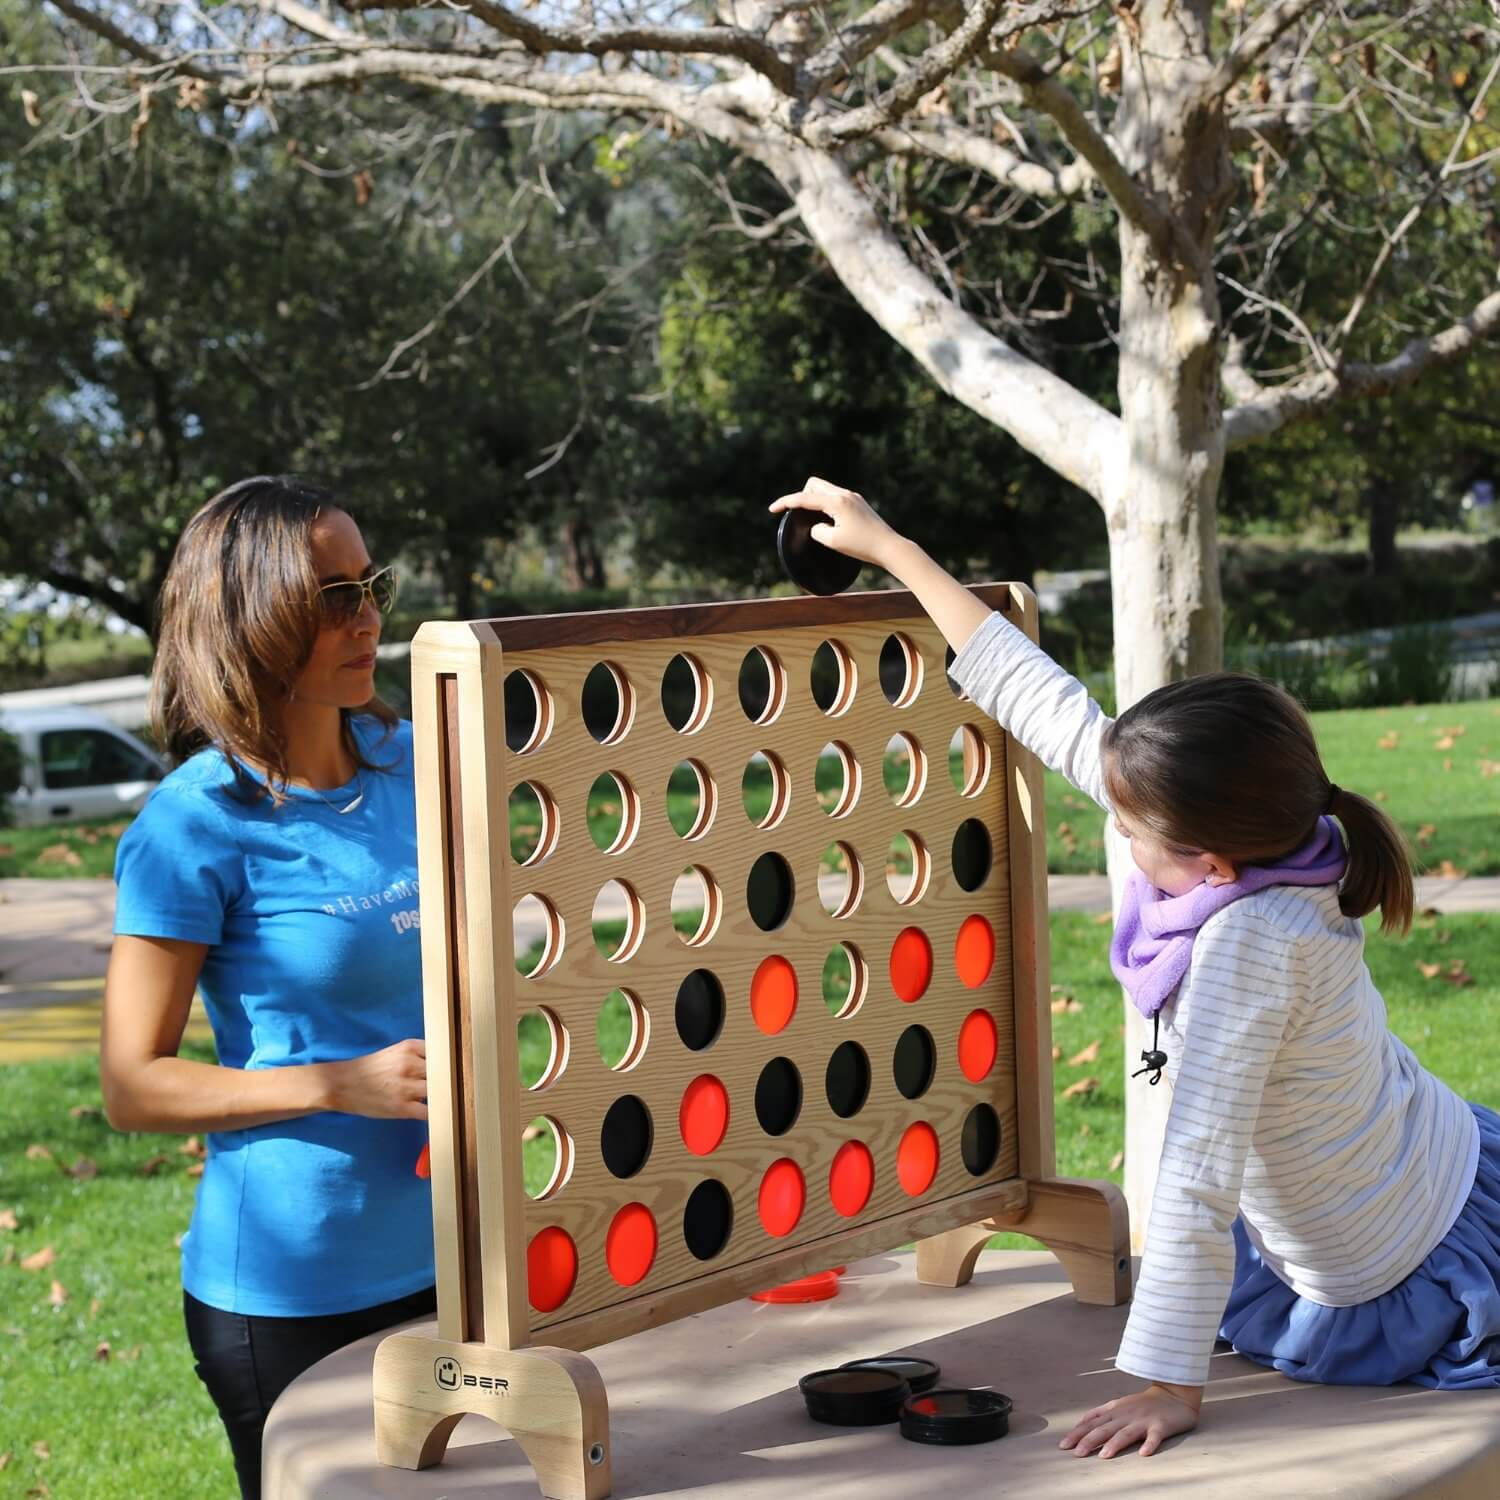 Best Yard Games for an Outdoor Party Sometimes Homemade